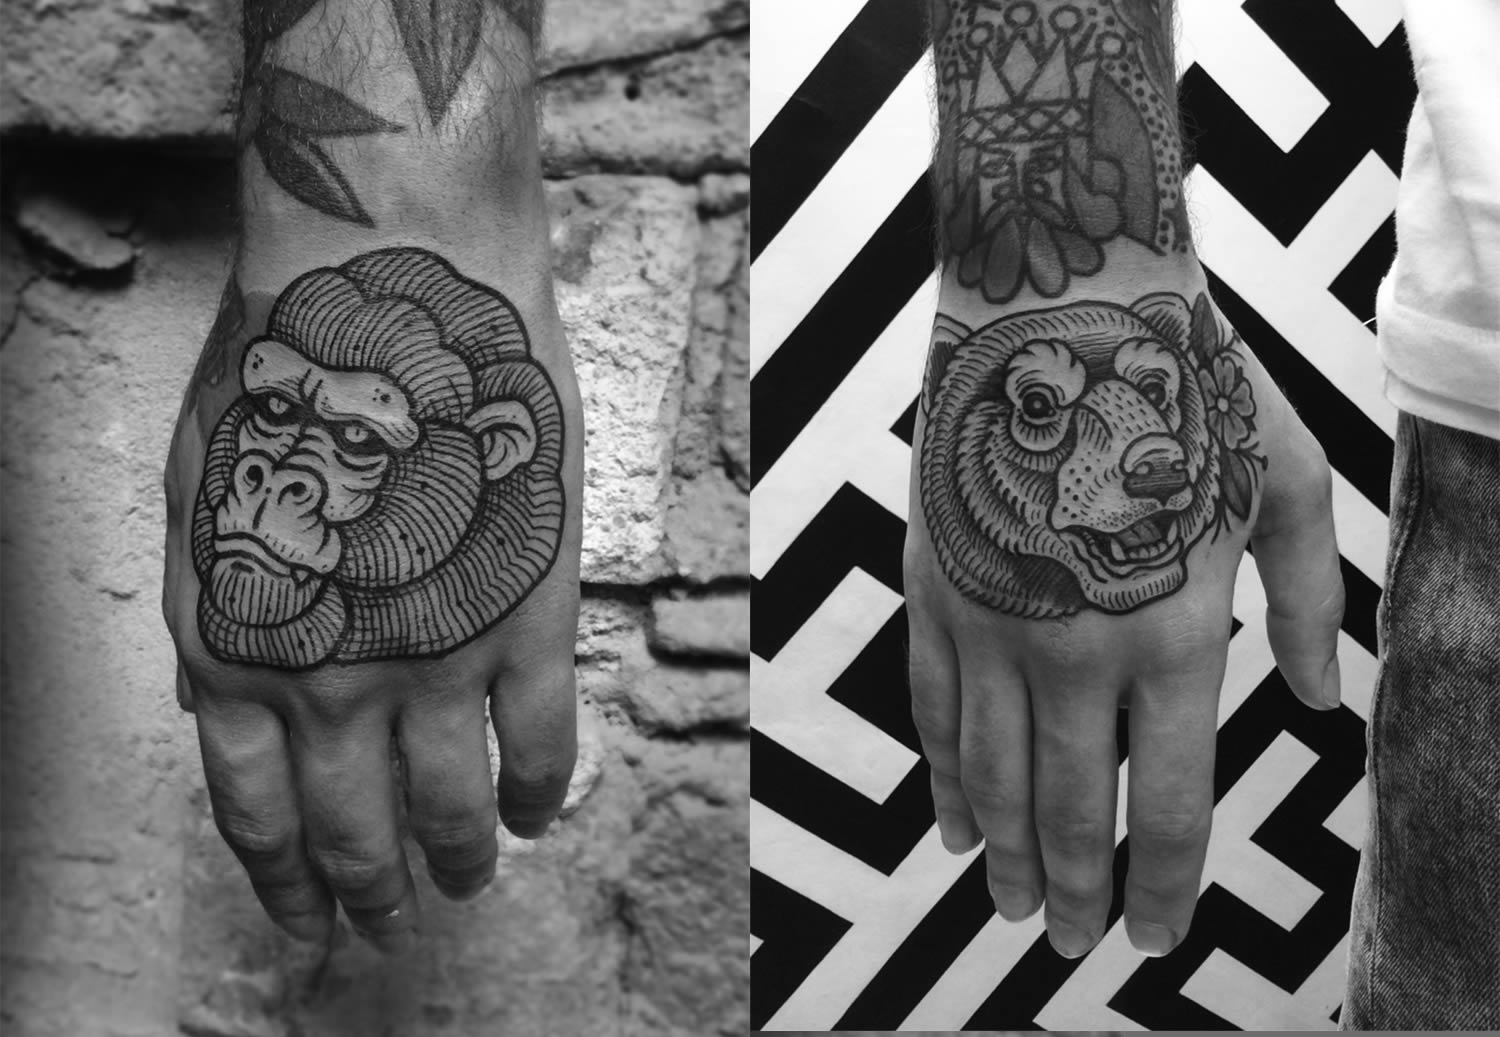 gorilla and bear hand tattoos